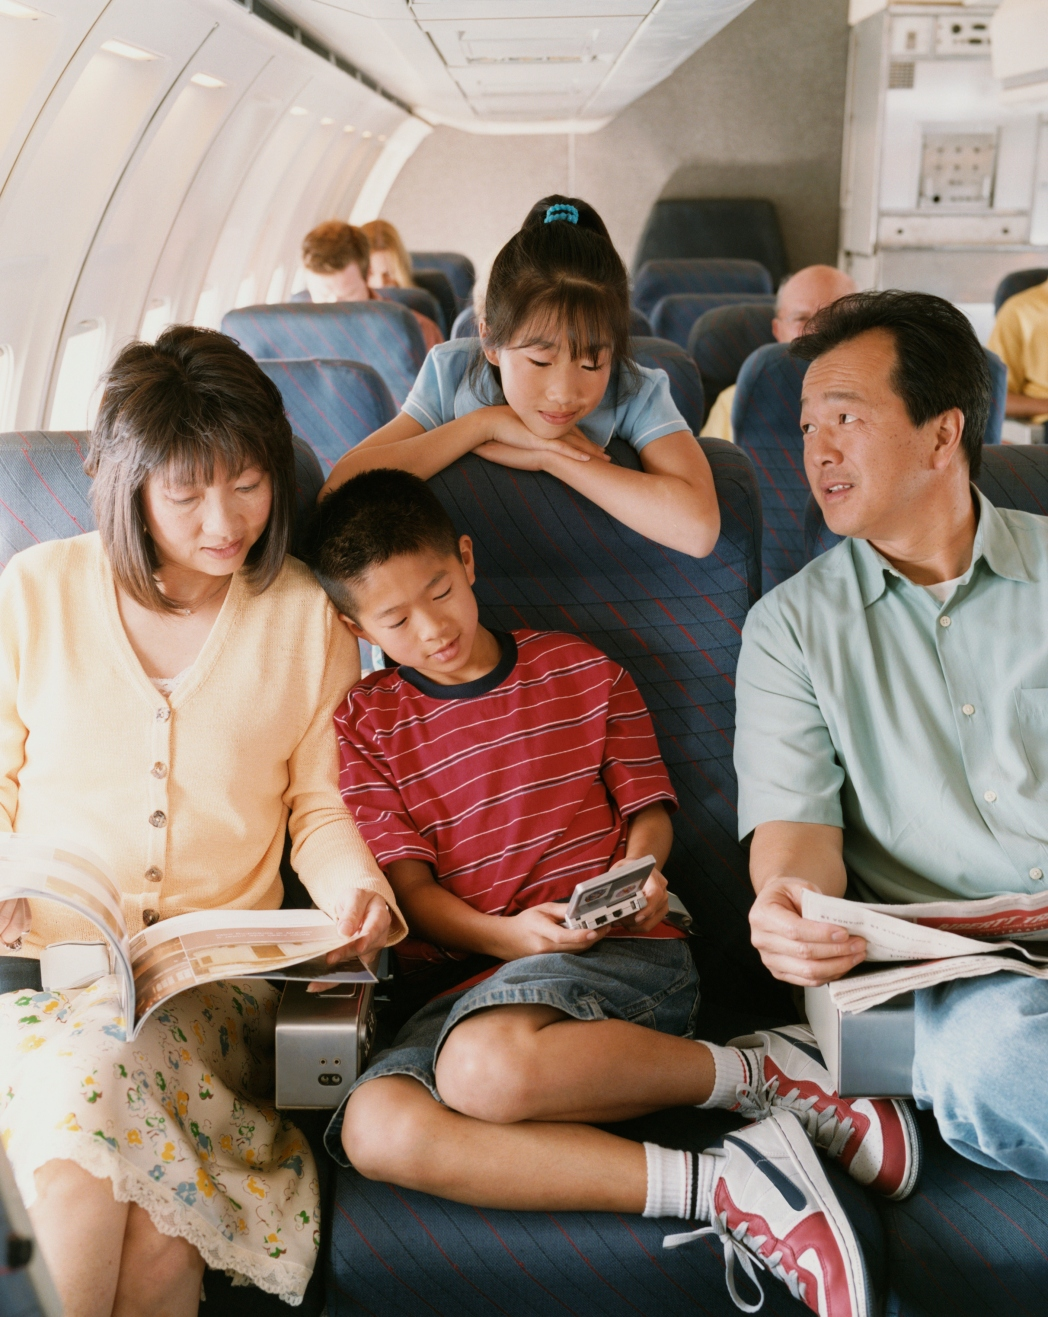 Family of four on a plane